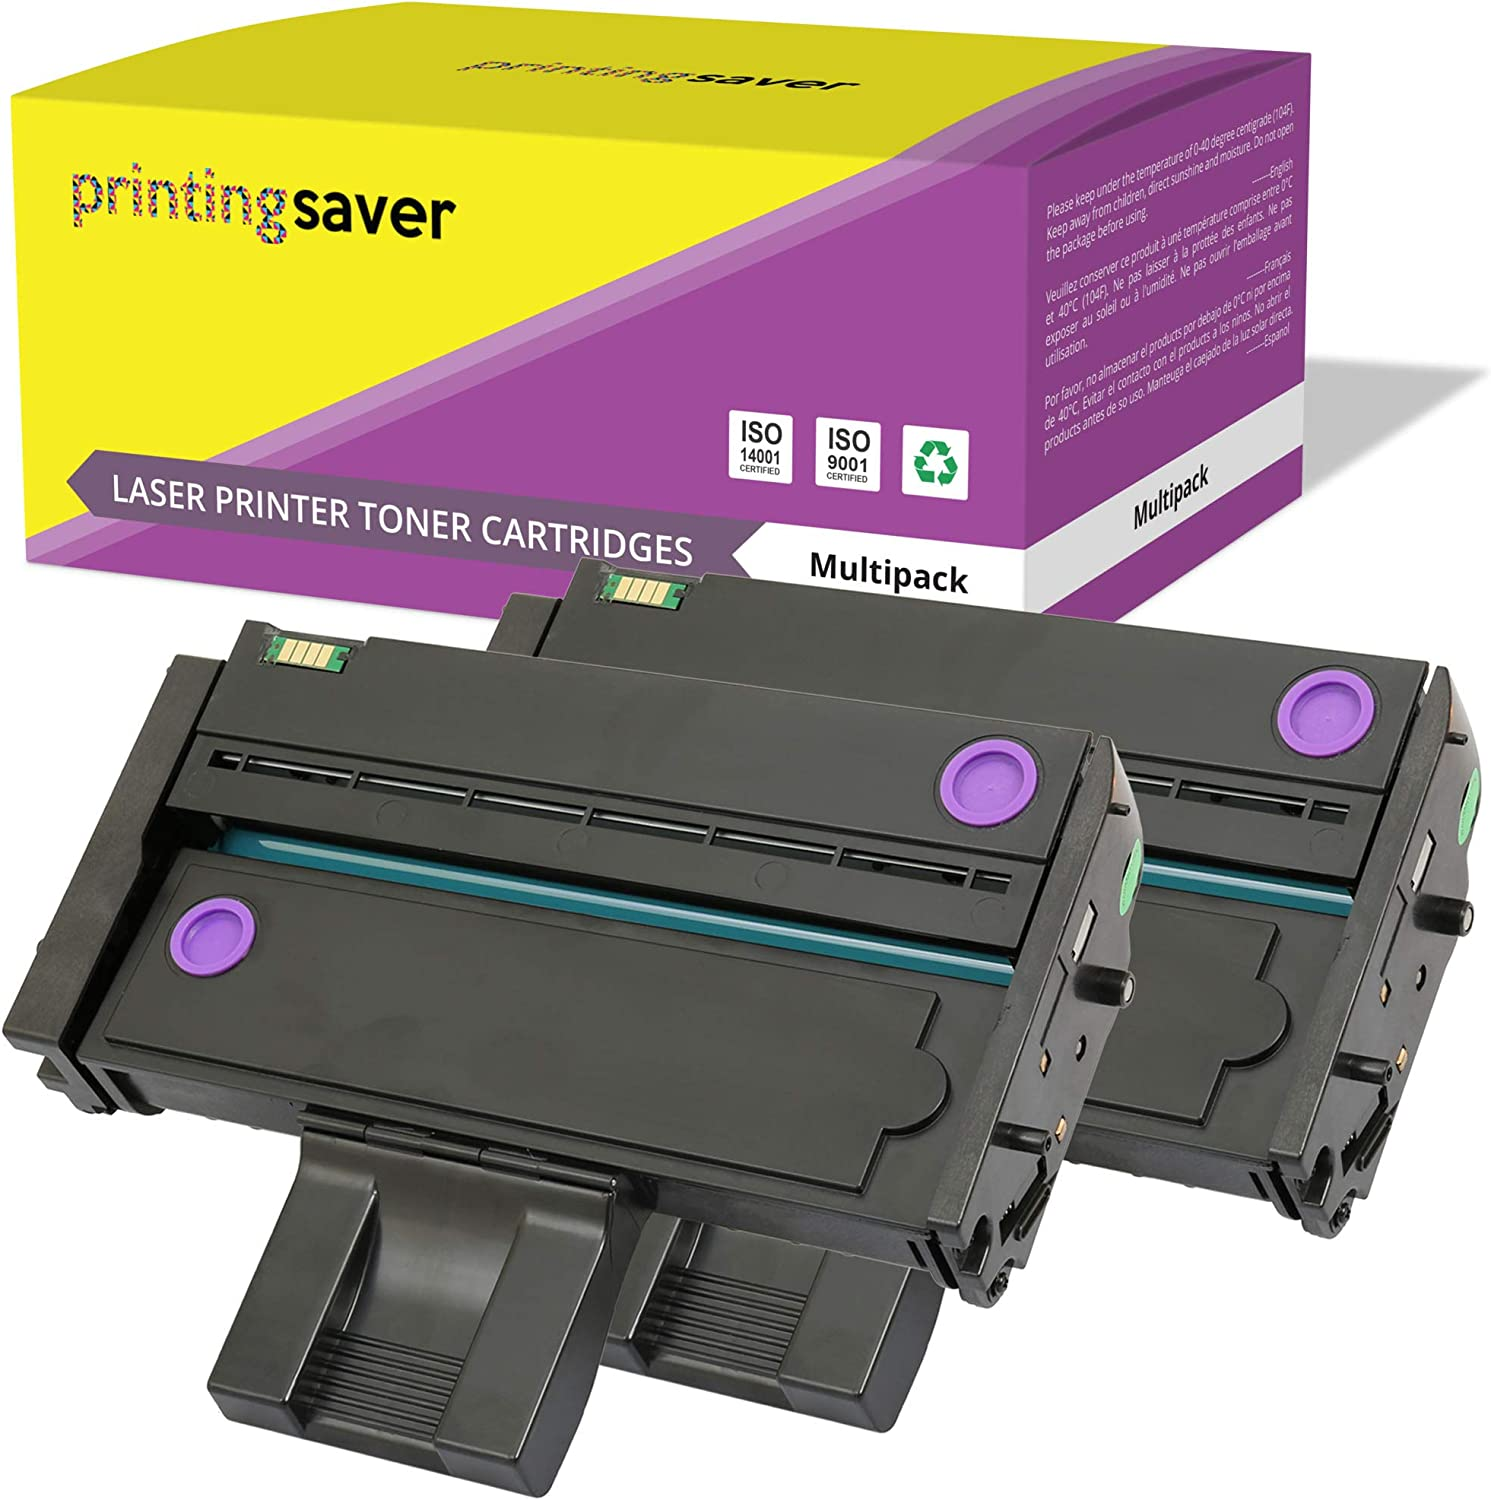 407254 Printing Saver Compatible Laser 2 Toners for RICOH SP 200, SP 201N/NW, SP 202, SP 203S, SP 204SF/SFN/SN, SP 210, SP 211SF/SU, SP 212NW/SFW/SNW/SUW/W, SP 213NW/SFW/SNW/W, SP 214 (2,600 Pages)